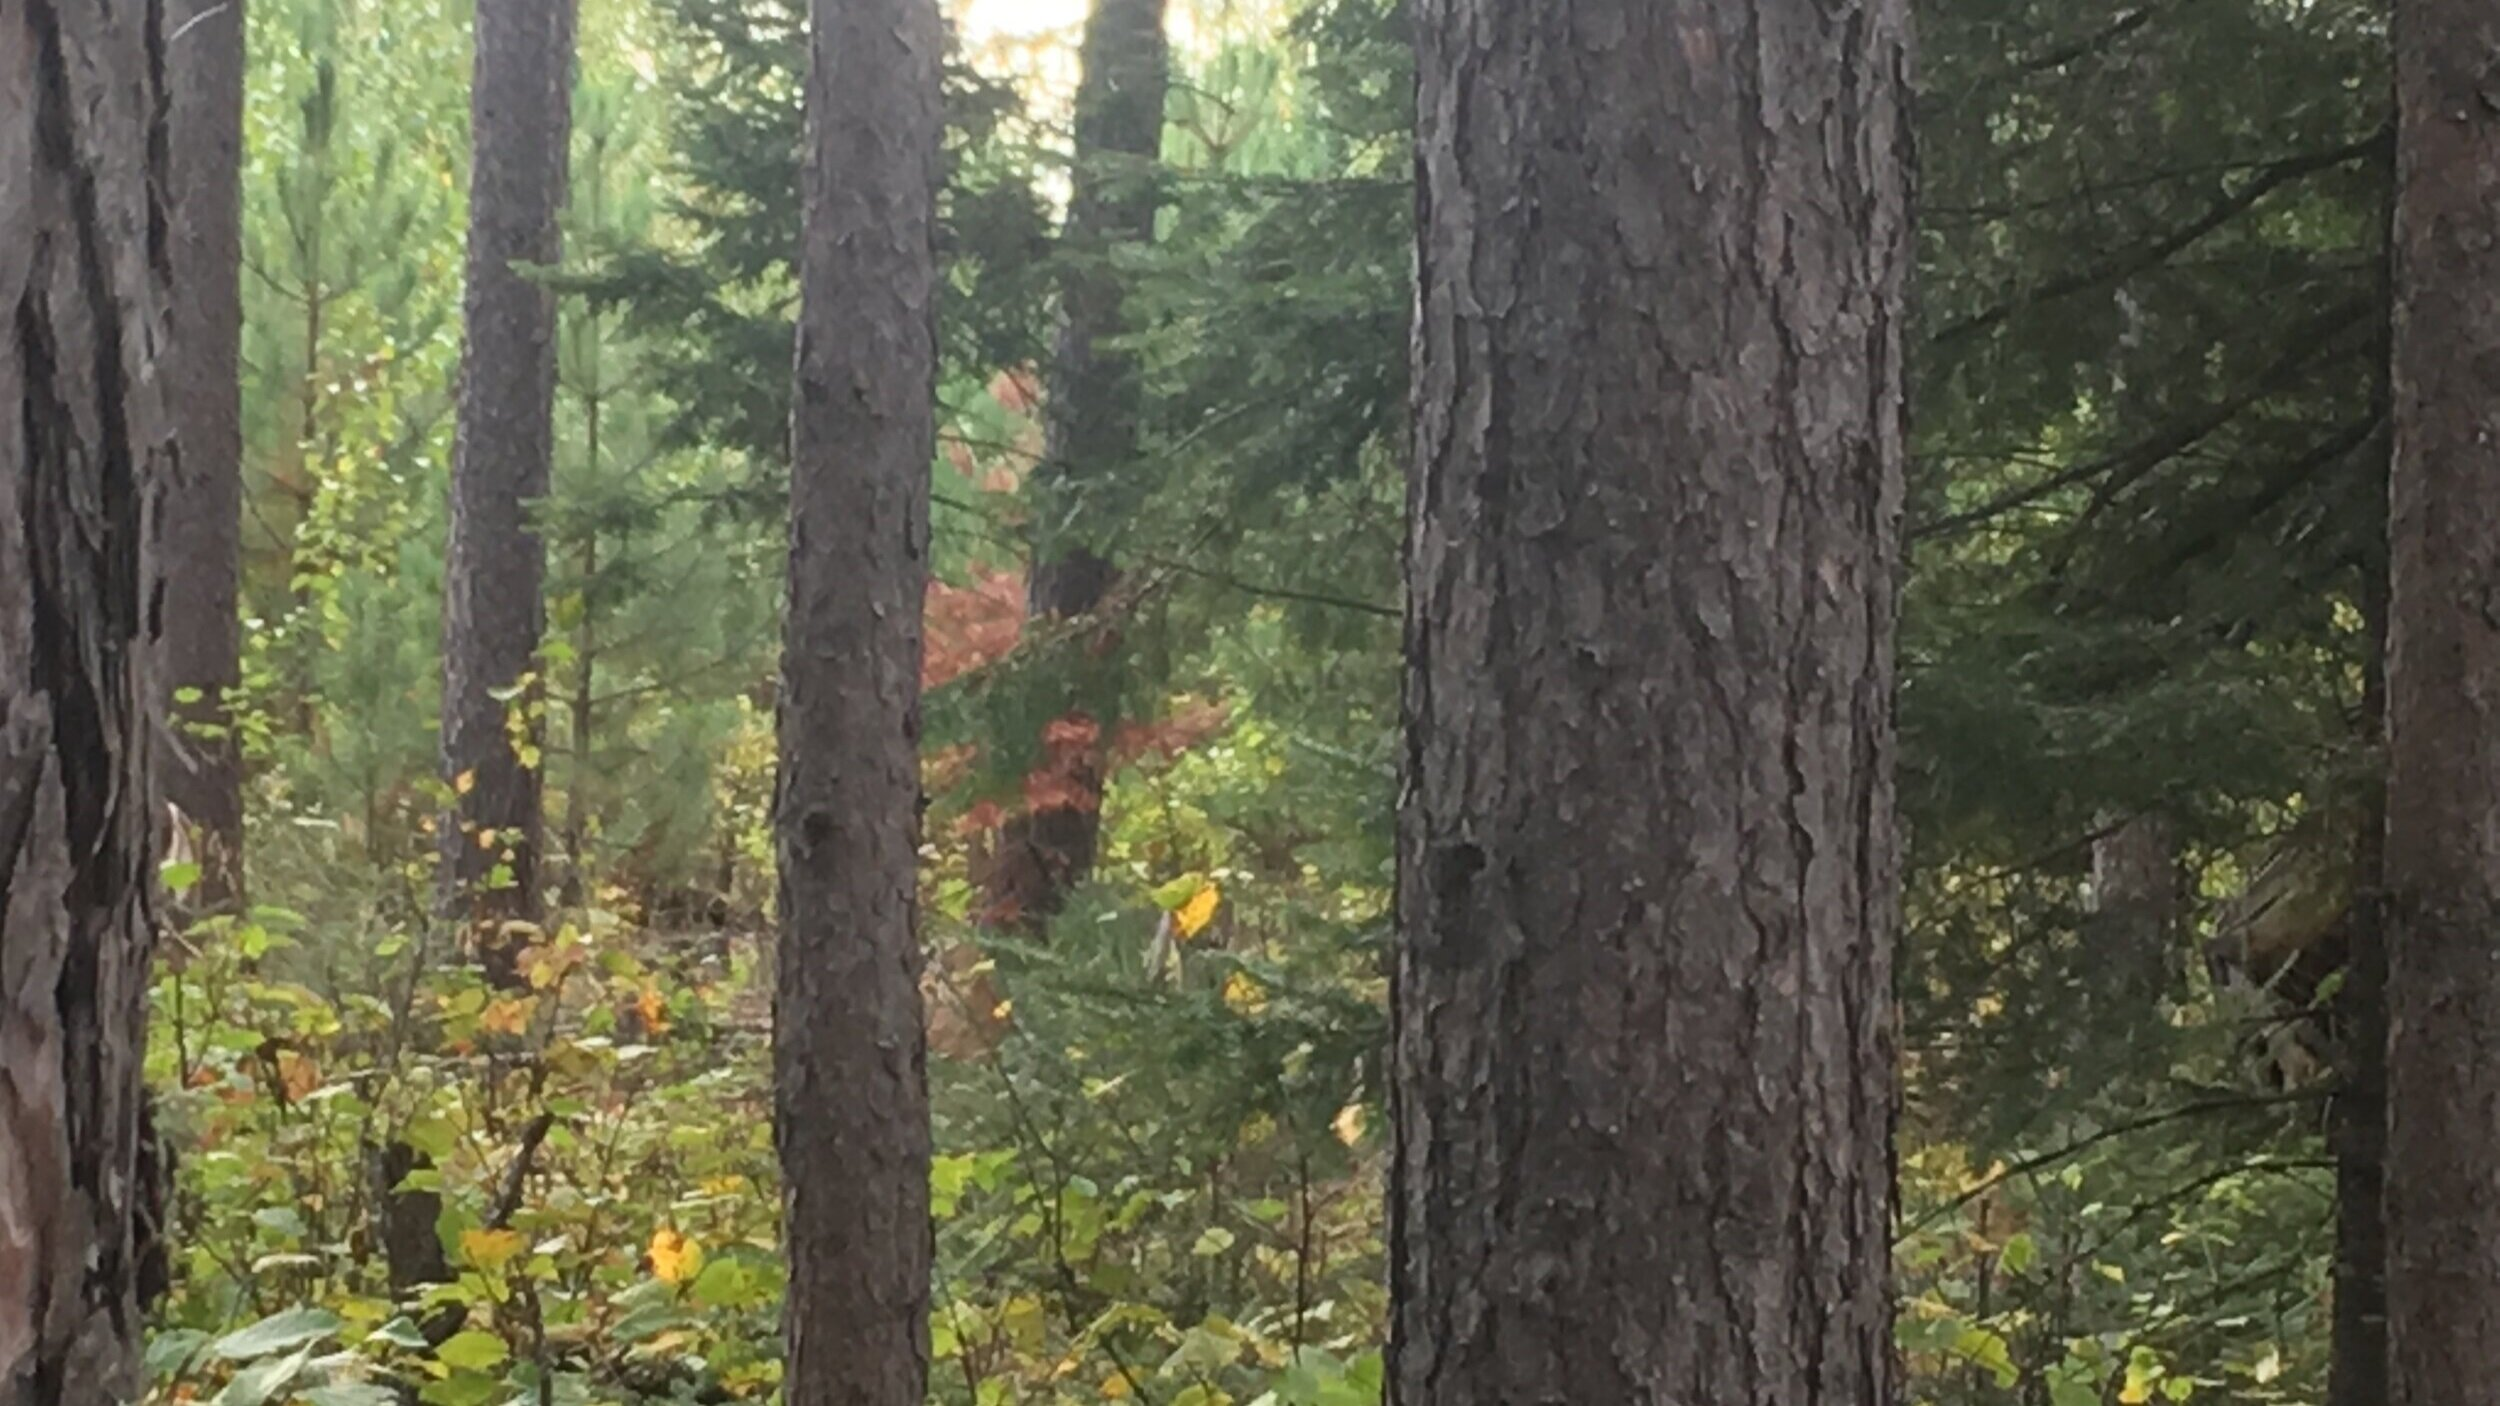 Each generation of ministry is seen in the trees of God's great Northwoods.